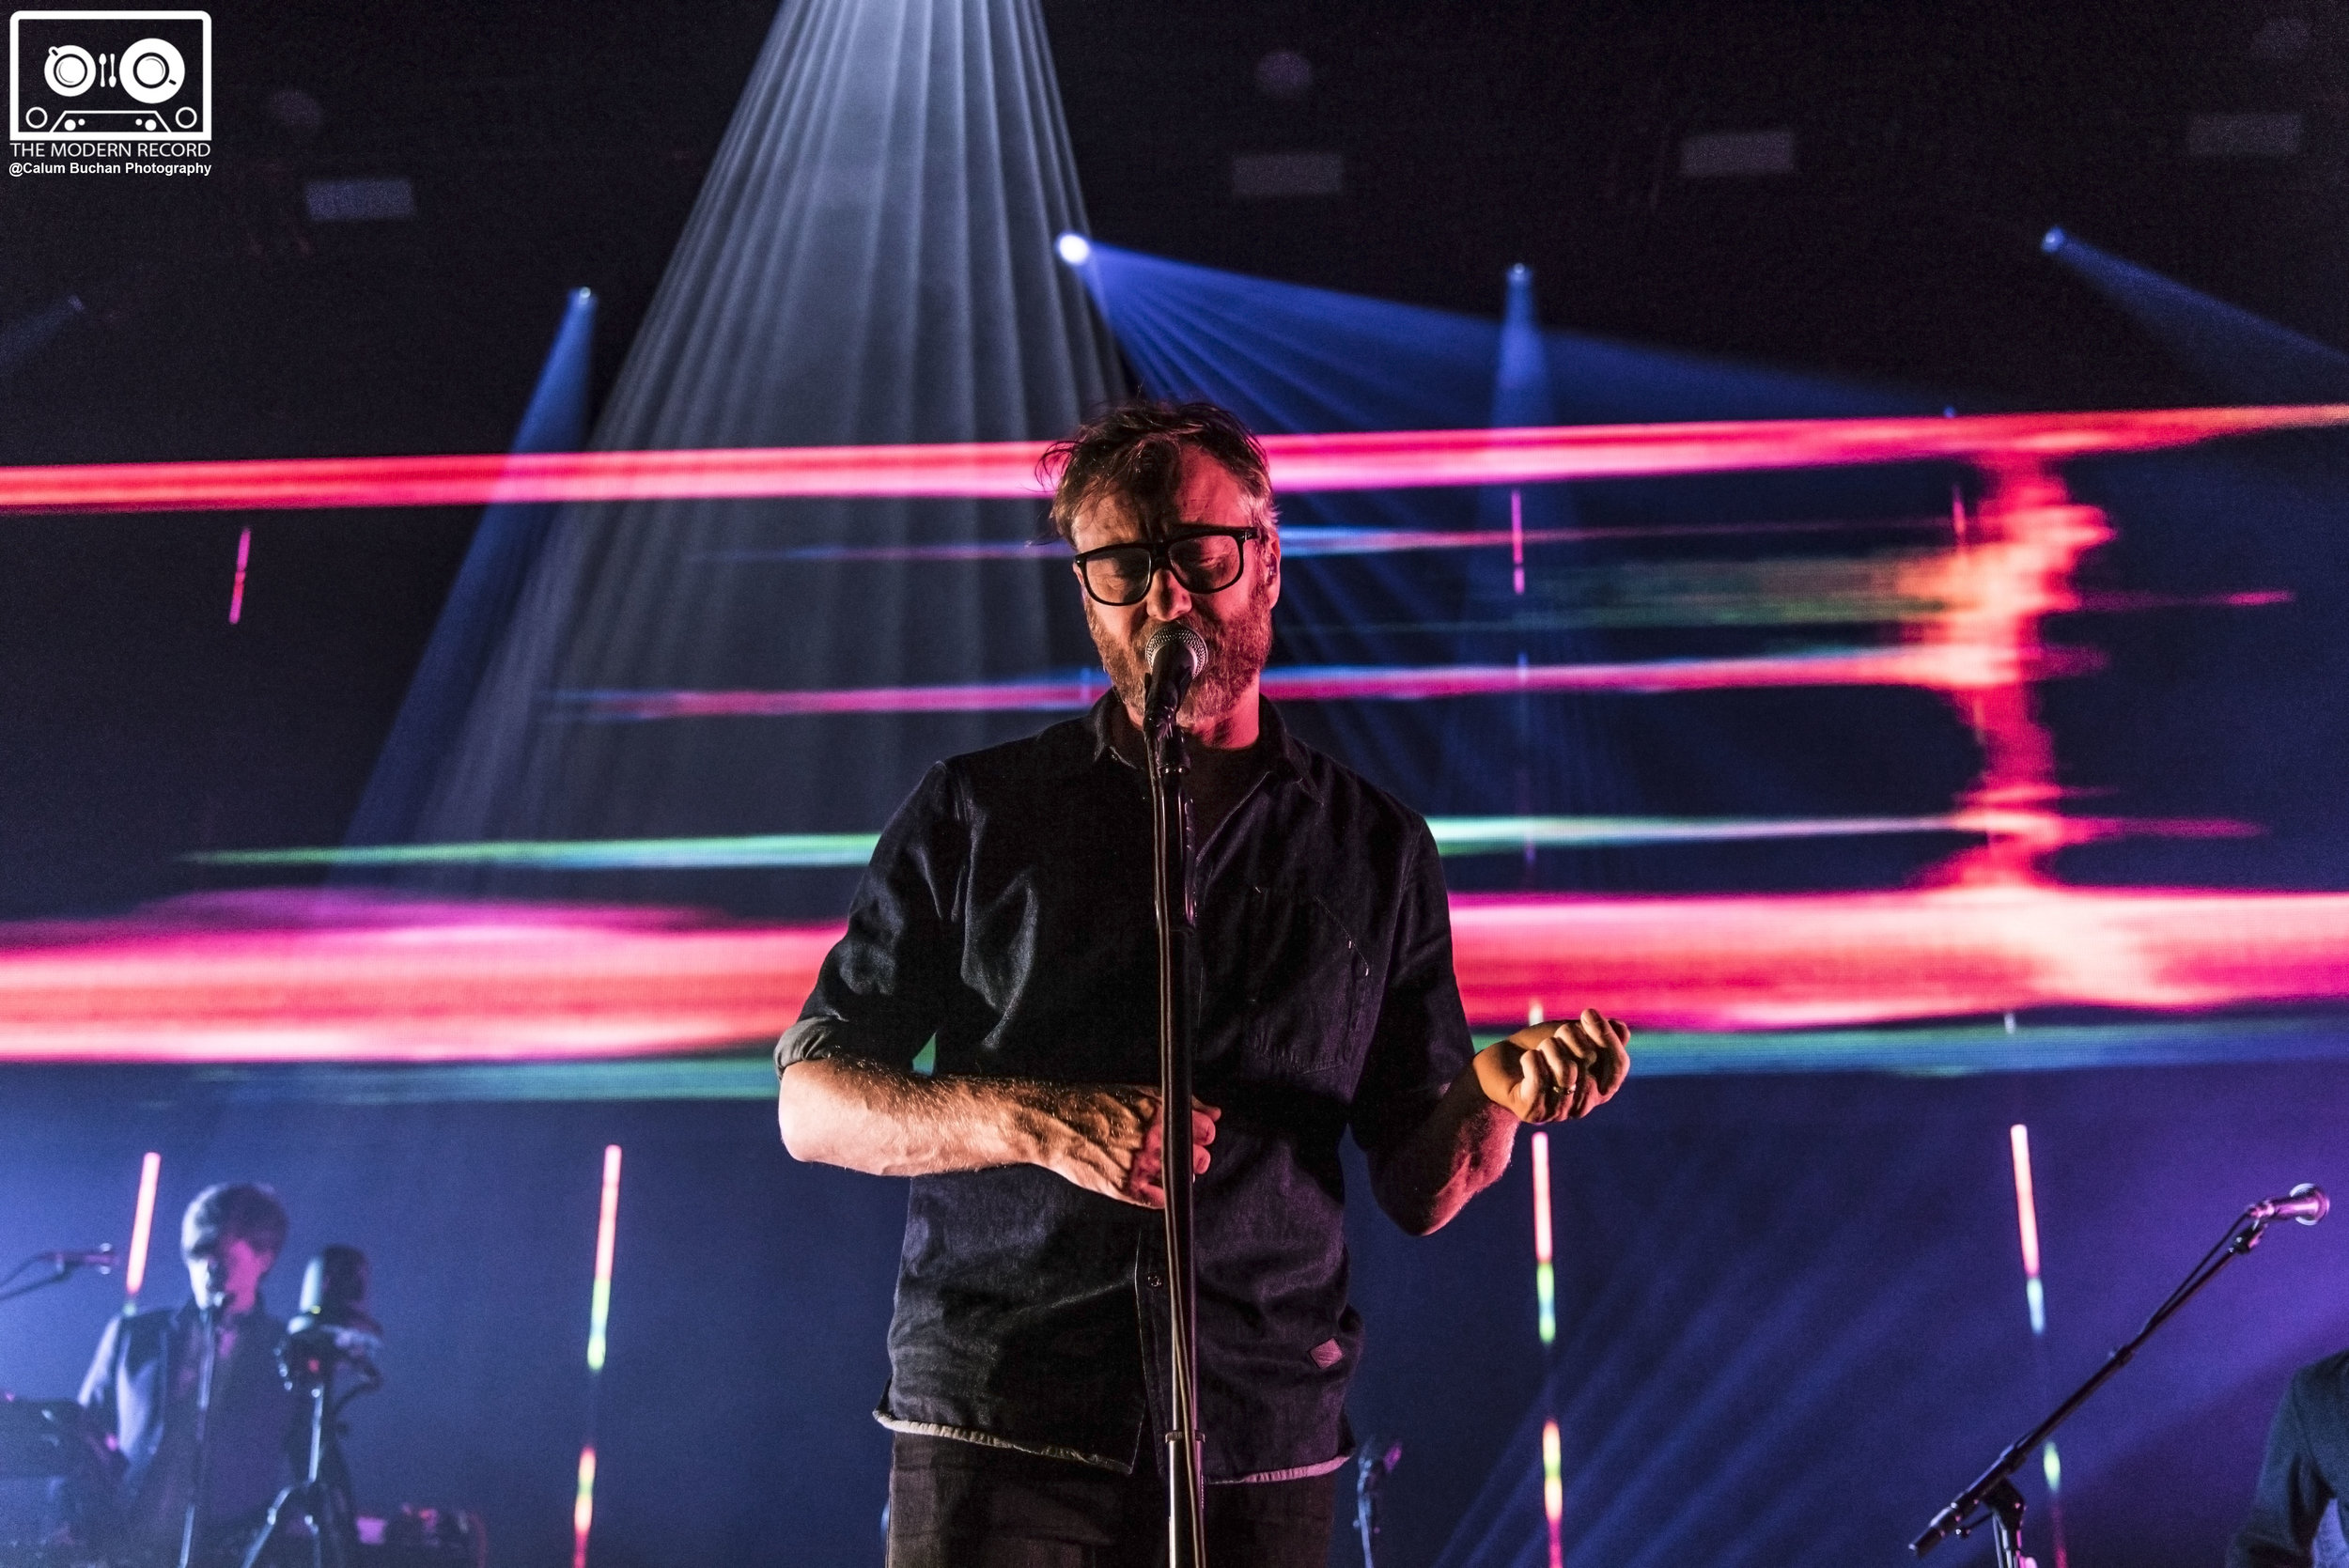 THE NATIONAL PLAYING FIRST OF TWO SOLD OUT SHOWS AT EDINBURGH'S USHER HALL - 20/09/2017  PICTURE BY: CALUM BUCHAN PHOTOGRAPHY